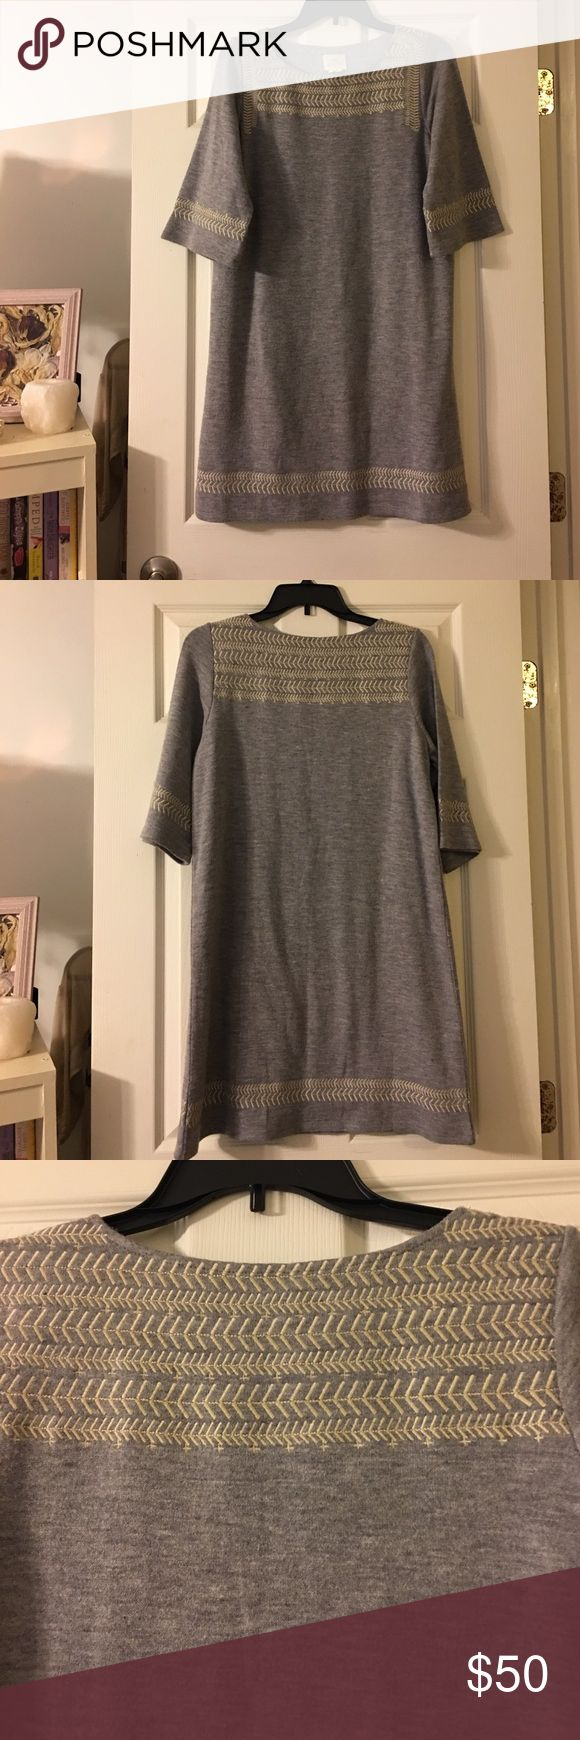 Anthropologie Dress❤ Very pretty and stylish🖤 only worn 2 times, no flaws and in very good condition. Pair with a long sweater and you have the perfect cold day outfit!💞 Anthropologie Dresses Mini